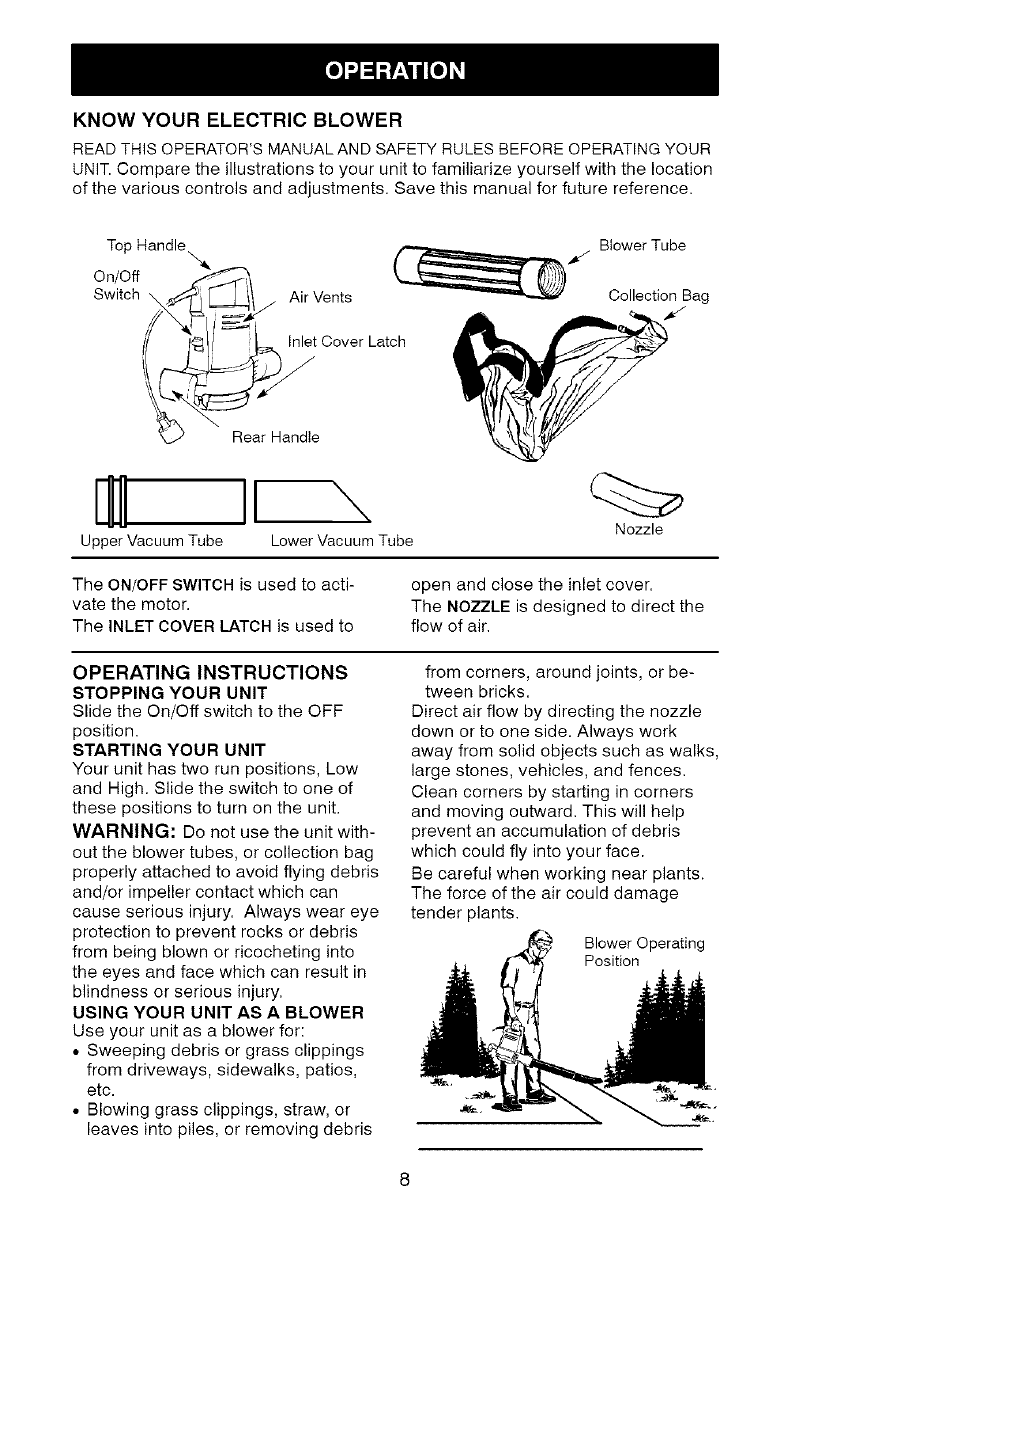 Page 8 of Craftsman Blower 358.798370 User Guide